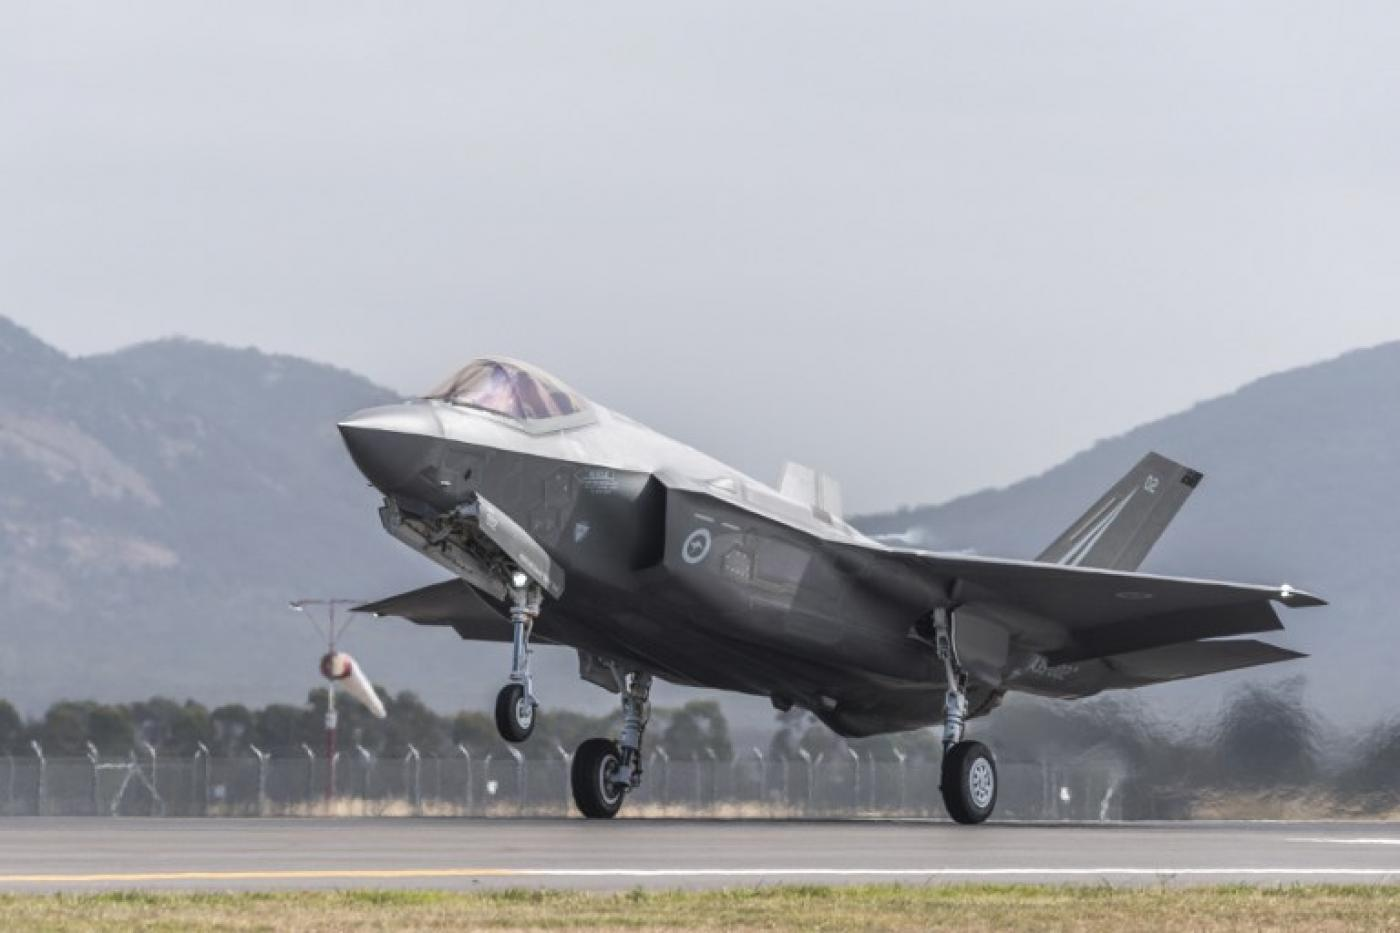 US General: No F-35 Jet Sale to Turkey if It Buys Russia System